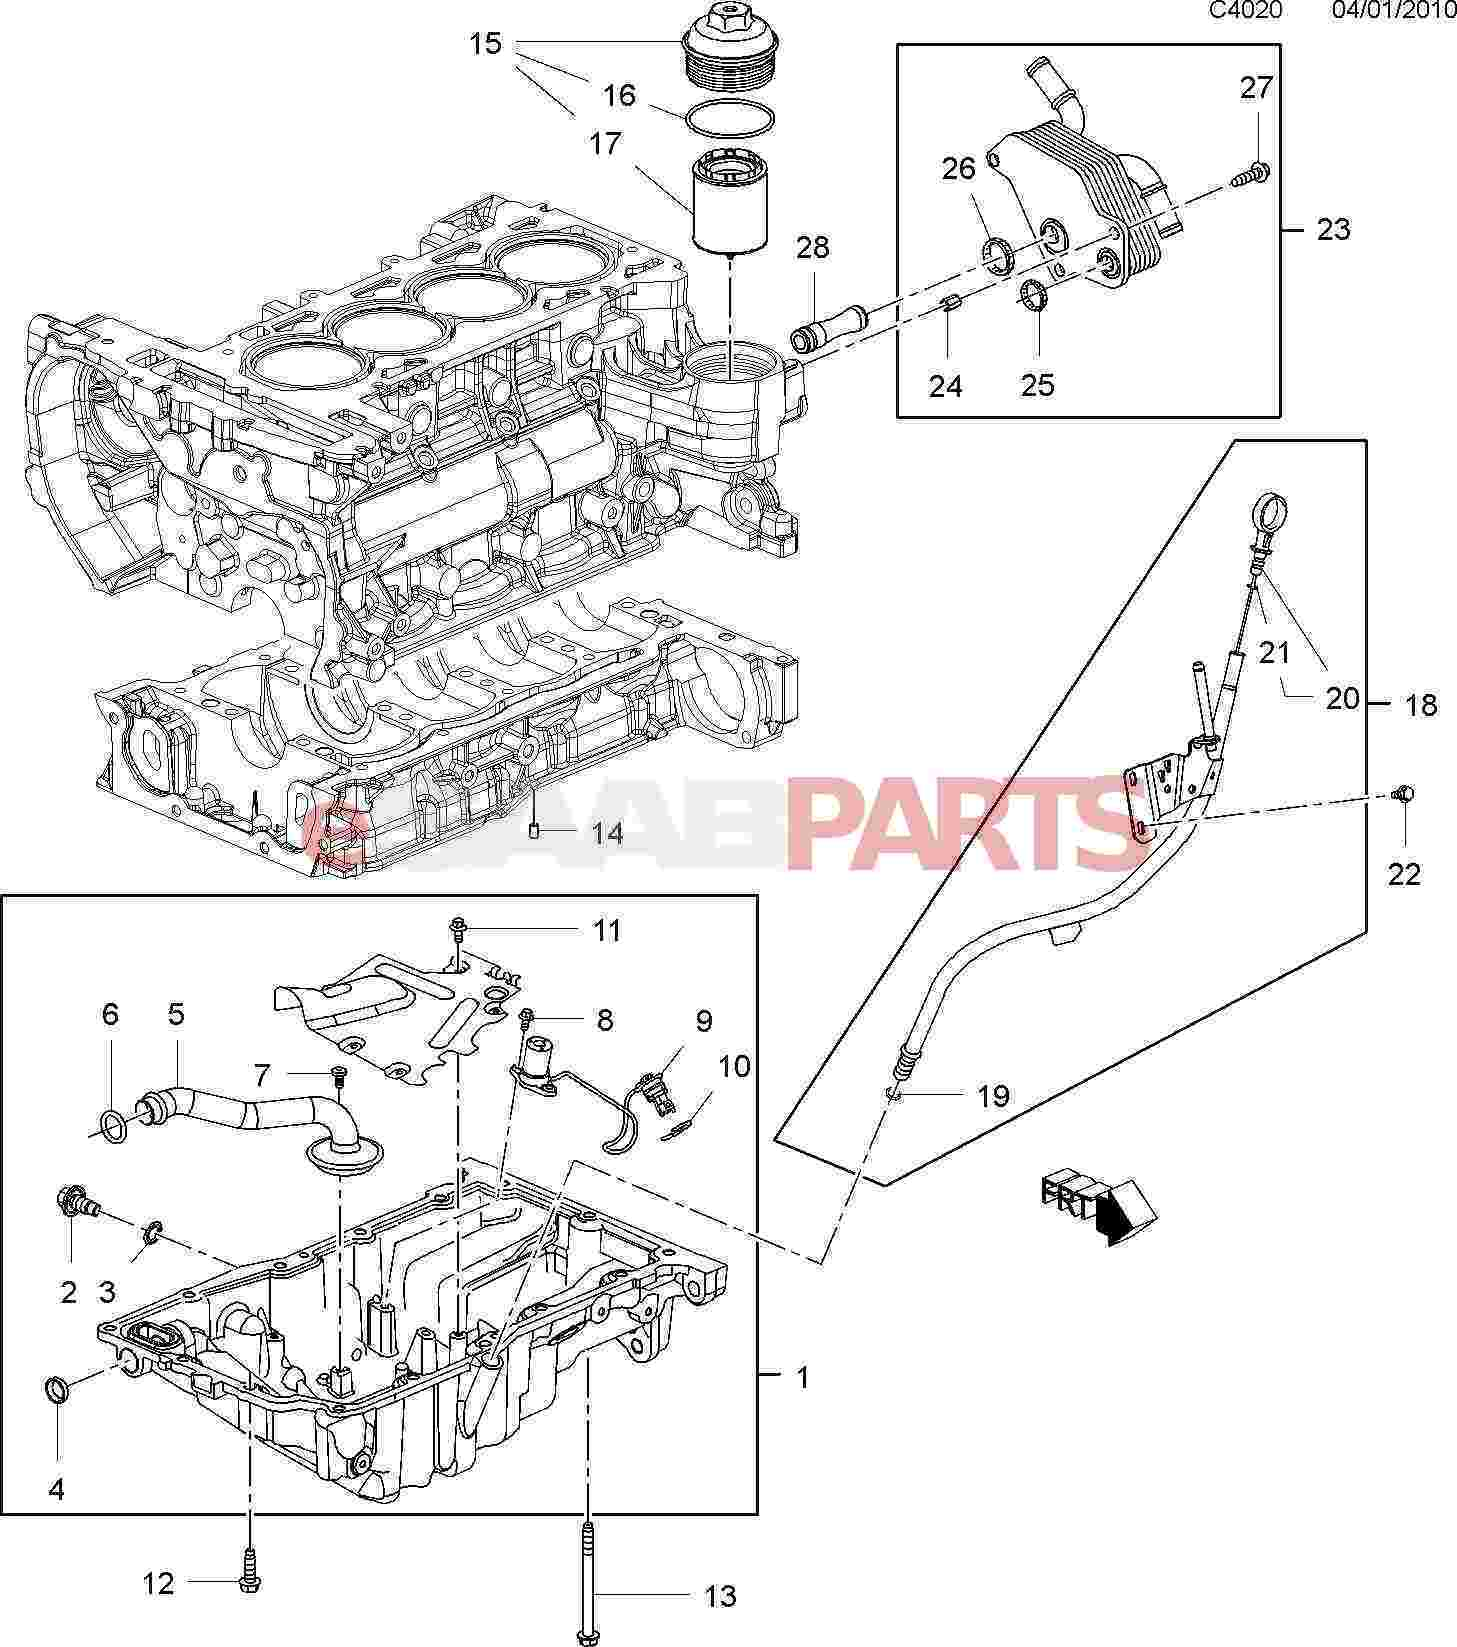 saab 99 engine diagram  saab  auto parts catalog and diagram